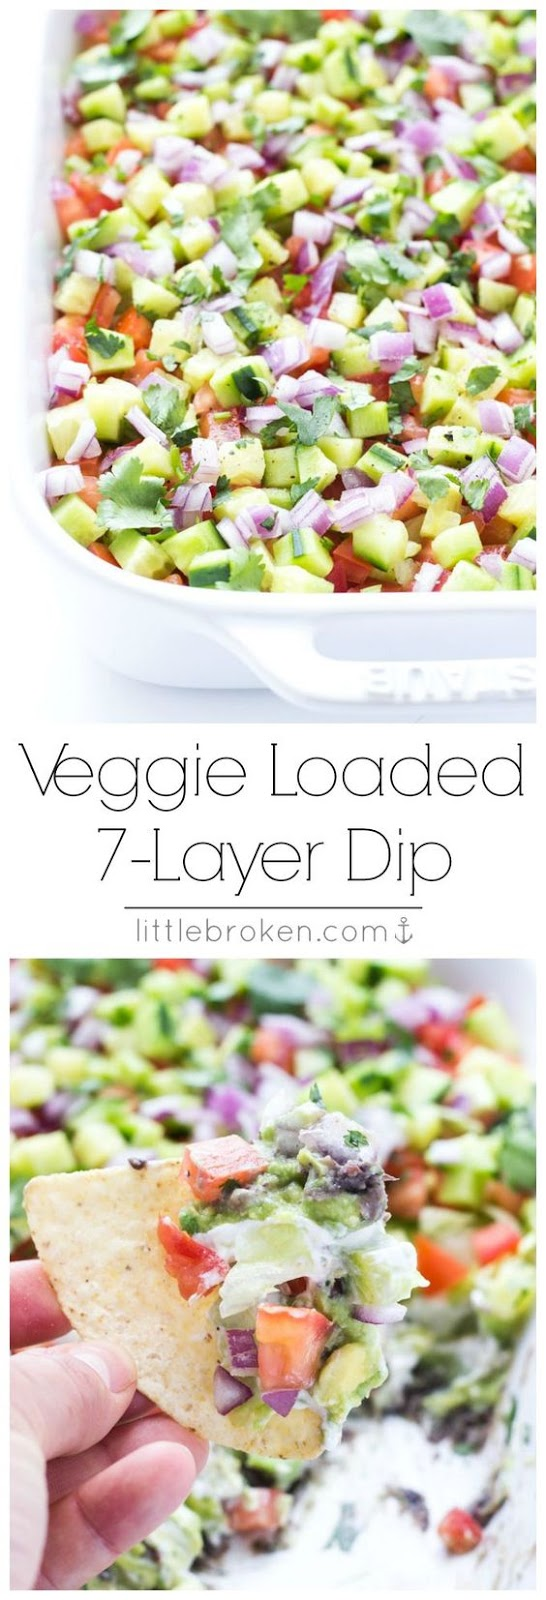 VEGGIE LOADED 7-LAYER DIP #veggie #loaded #7layerdip #healthyfood #healthysnack #healthyrecipes #snackrecipes